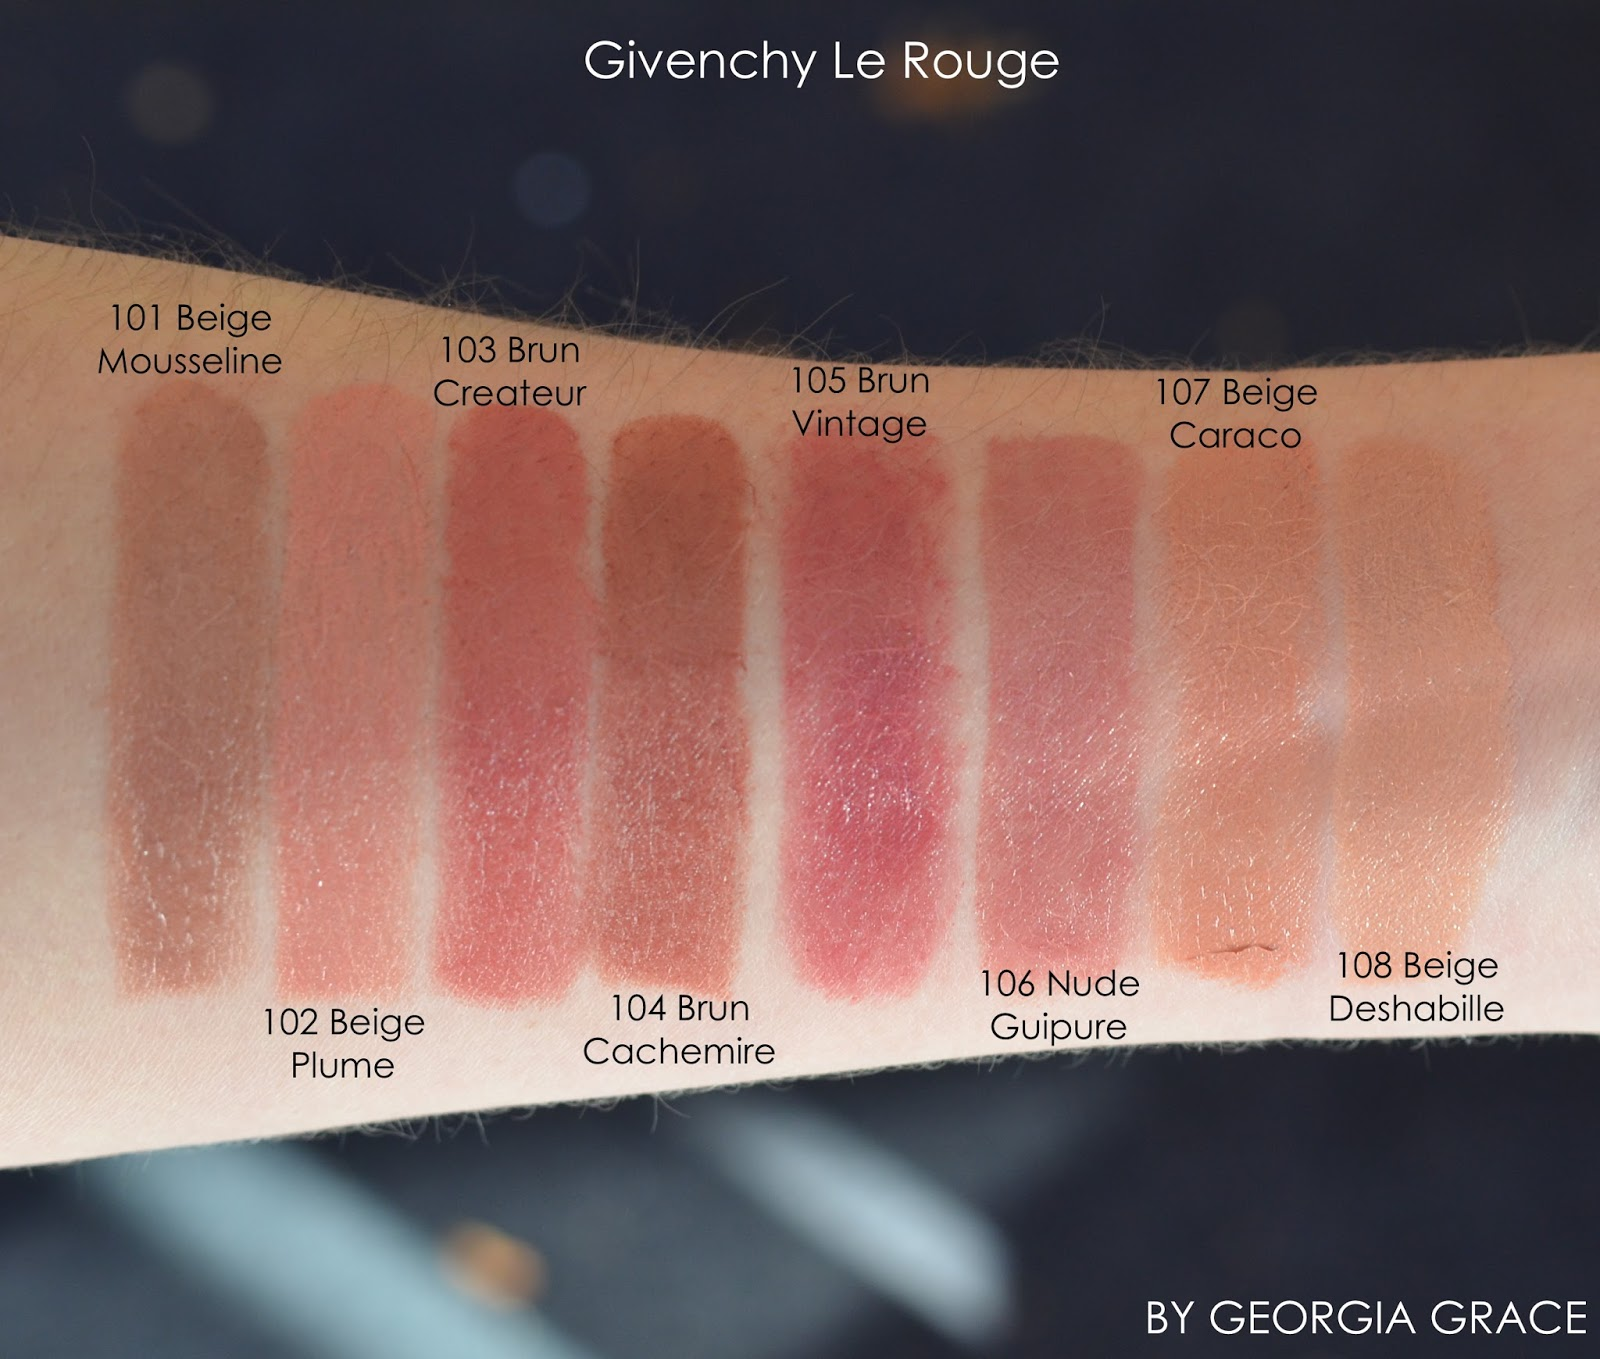 Givenchy Le Rouge By Georgia Grace